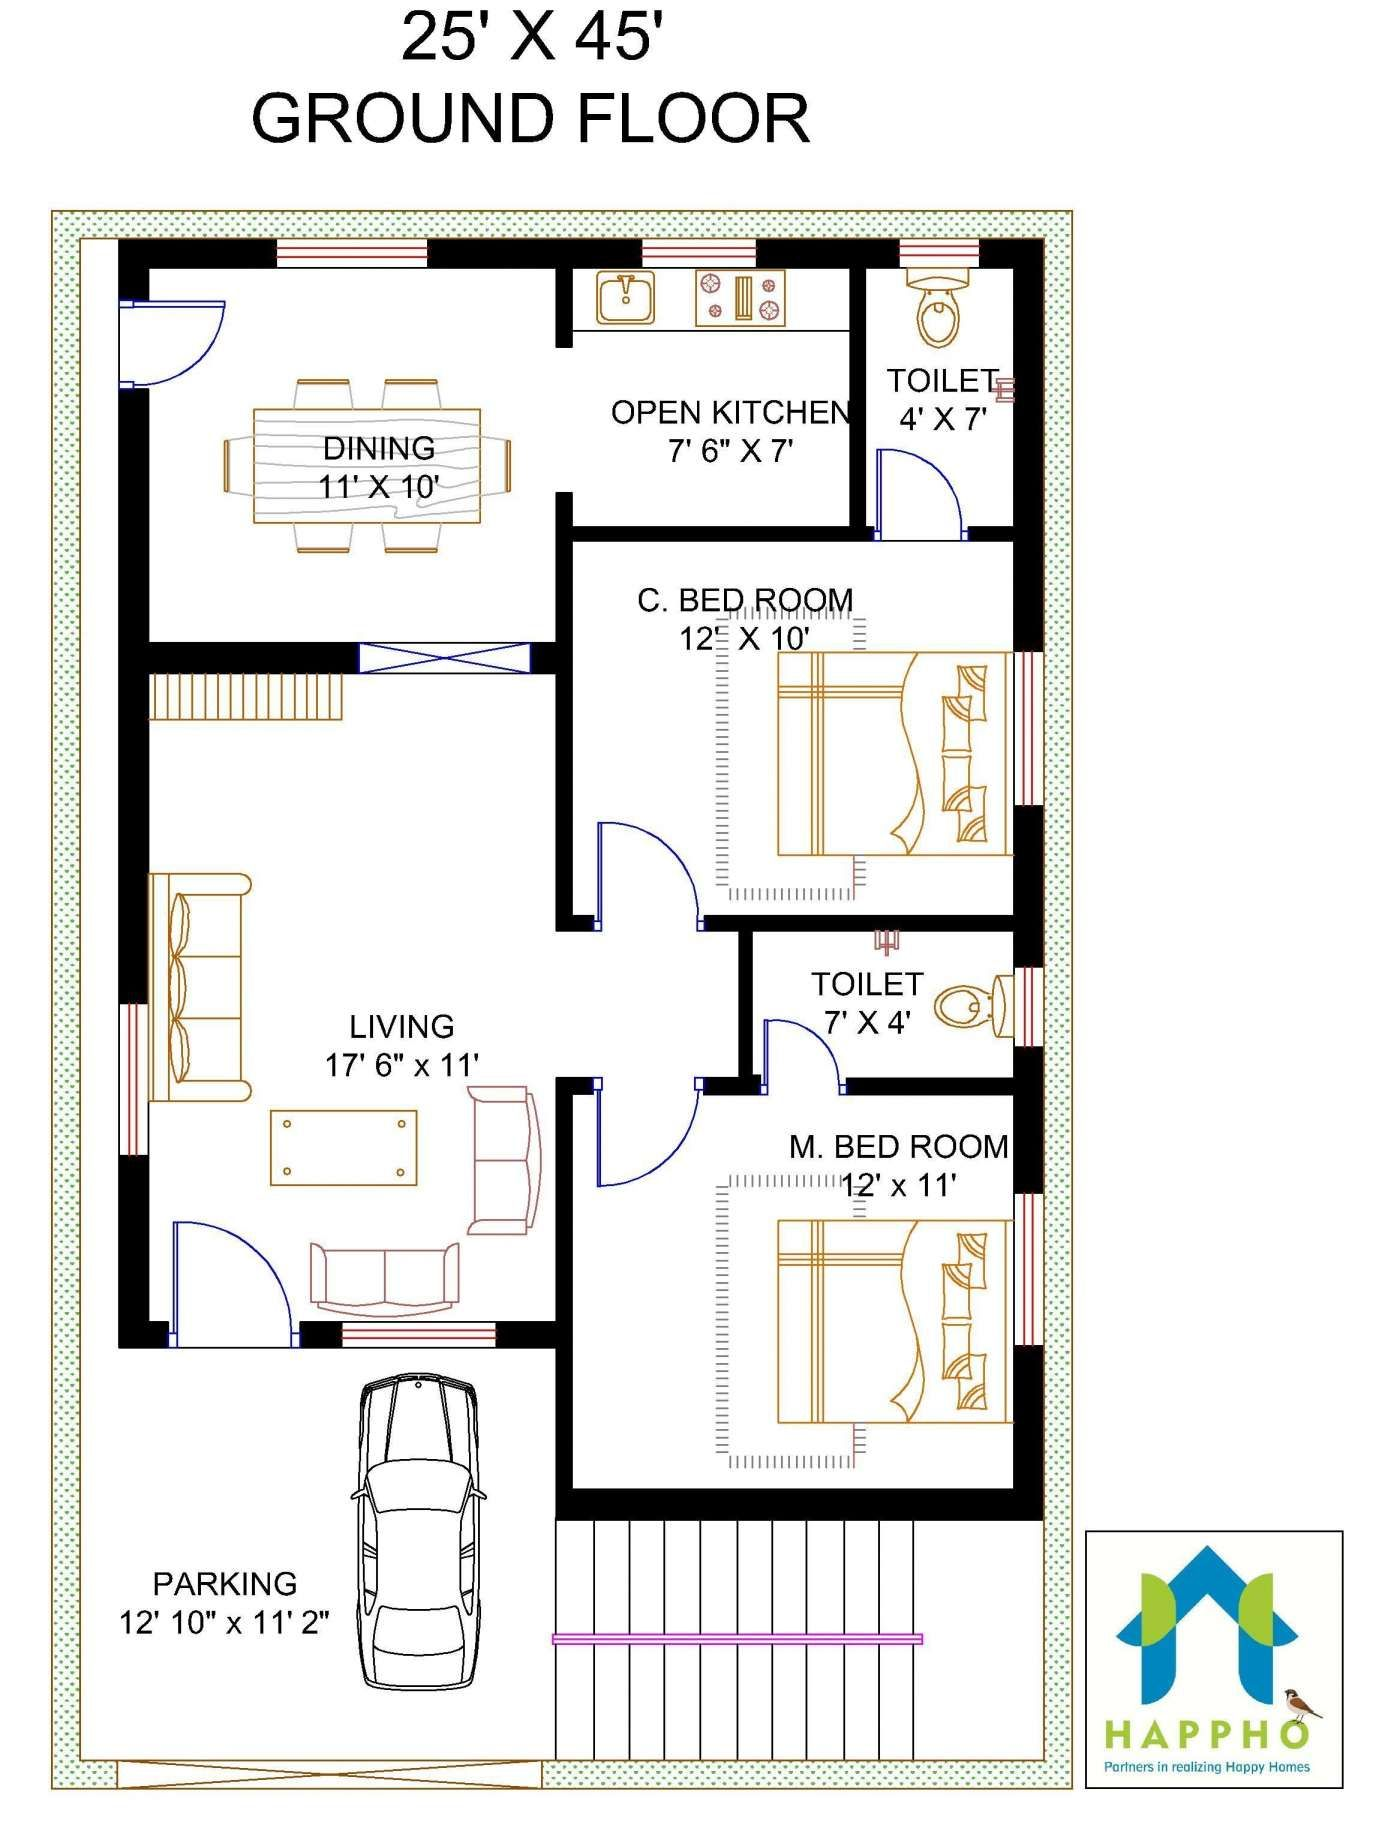 11 Awesome 6 Bedroom 2 Story House Plans 3d Collection Bedroom Paintcolorhouse Com In 2020 20x40 House Plans Bedroom House Plans House Map